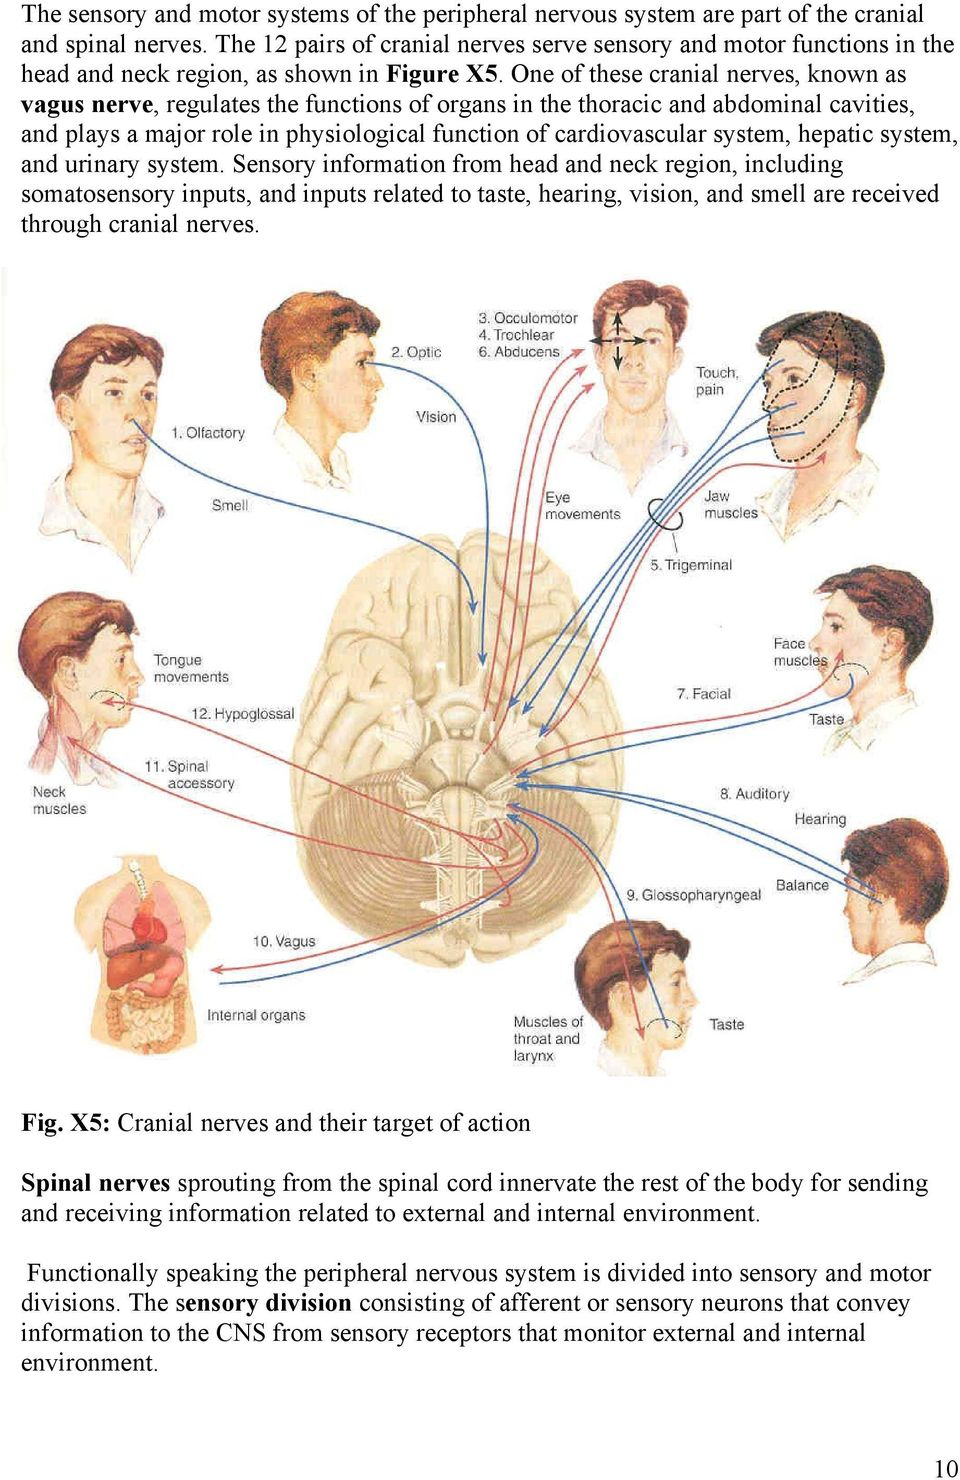 One of these cranial nerves, known as vagus nerve, regulates the functions of organs in the thoracic and abdominal cavities, and plays a major role in physiological function of cardiovascular system,